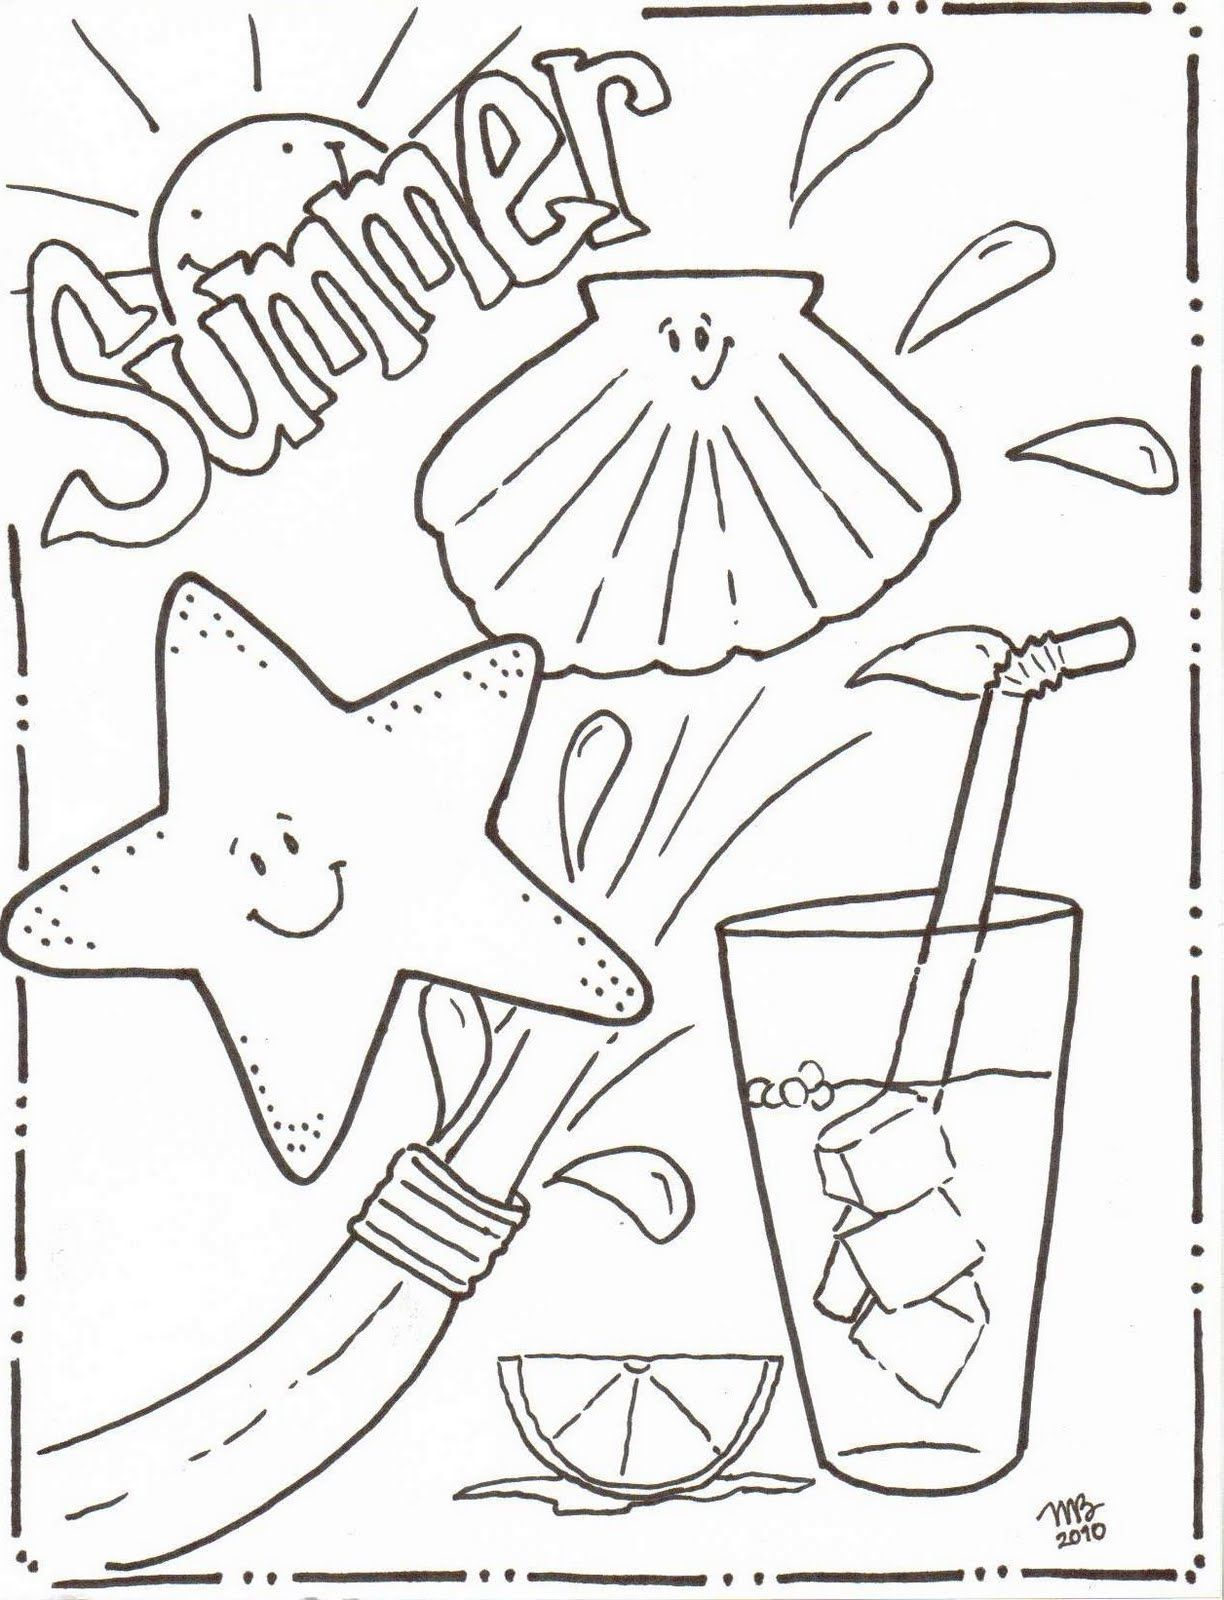 Fr free coloring pages for june - June Coloring Pages To Download And Print For Free